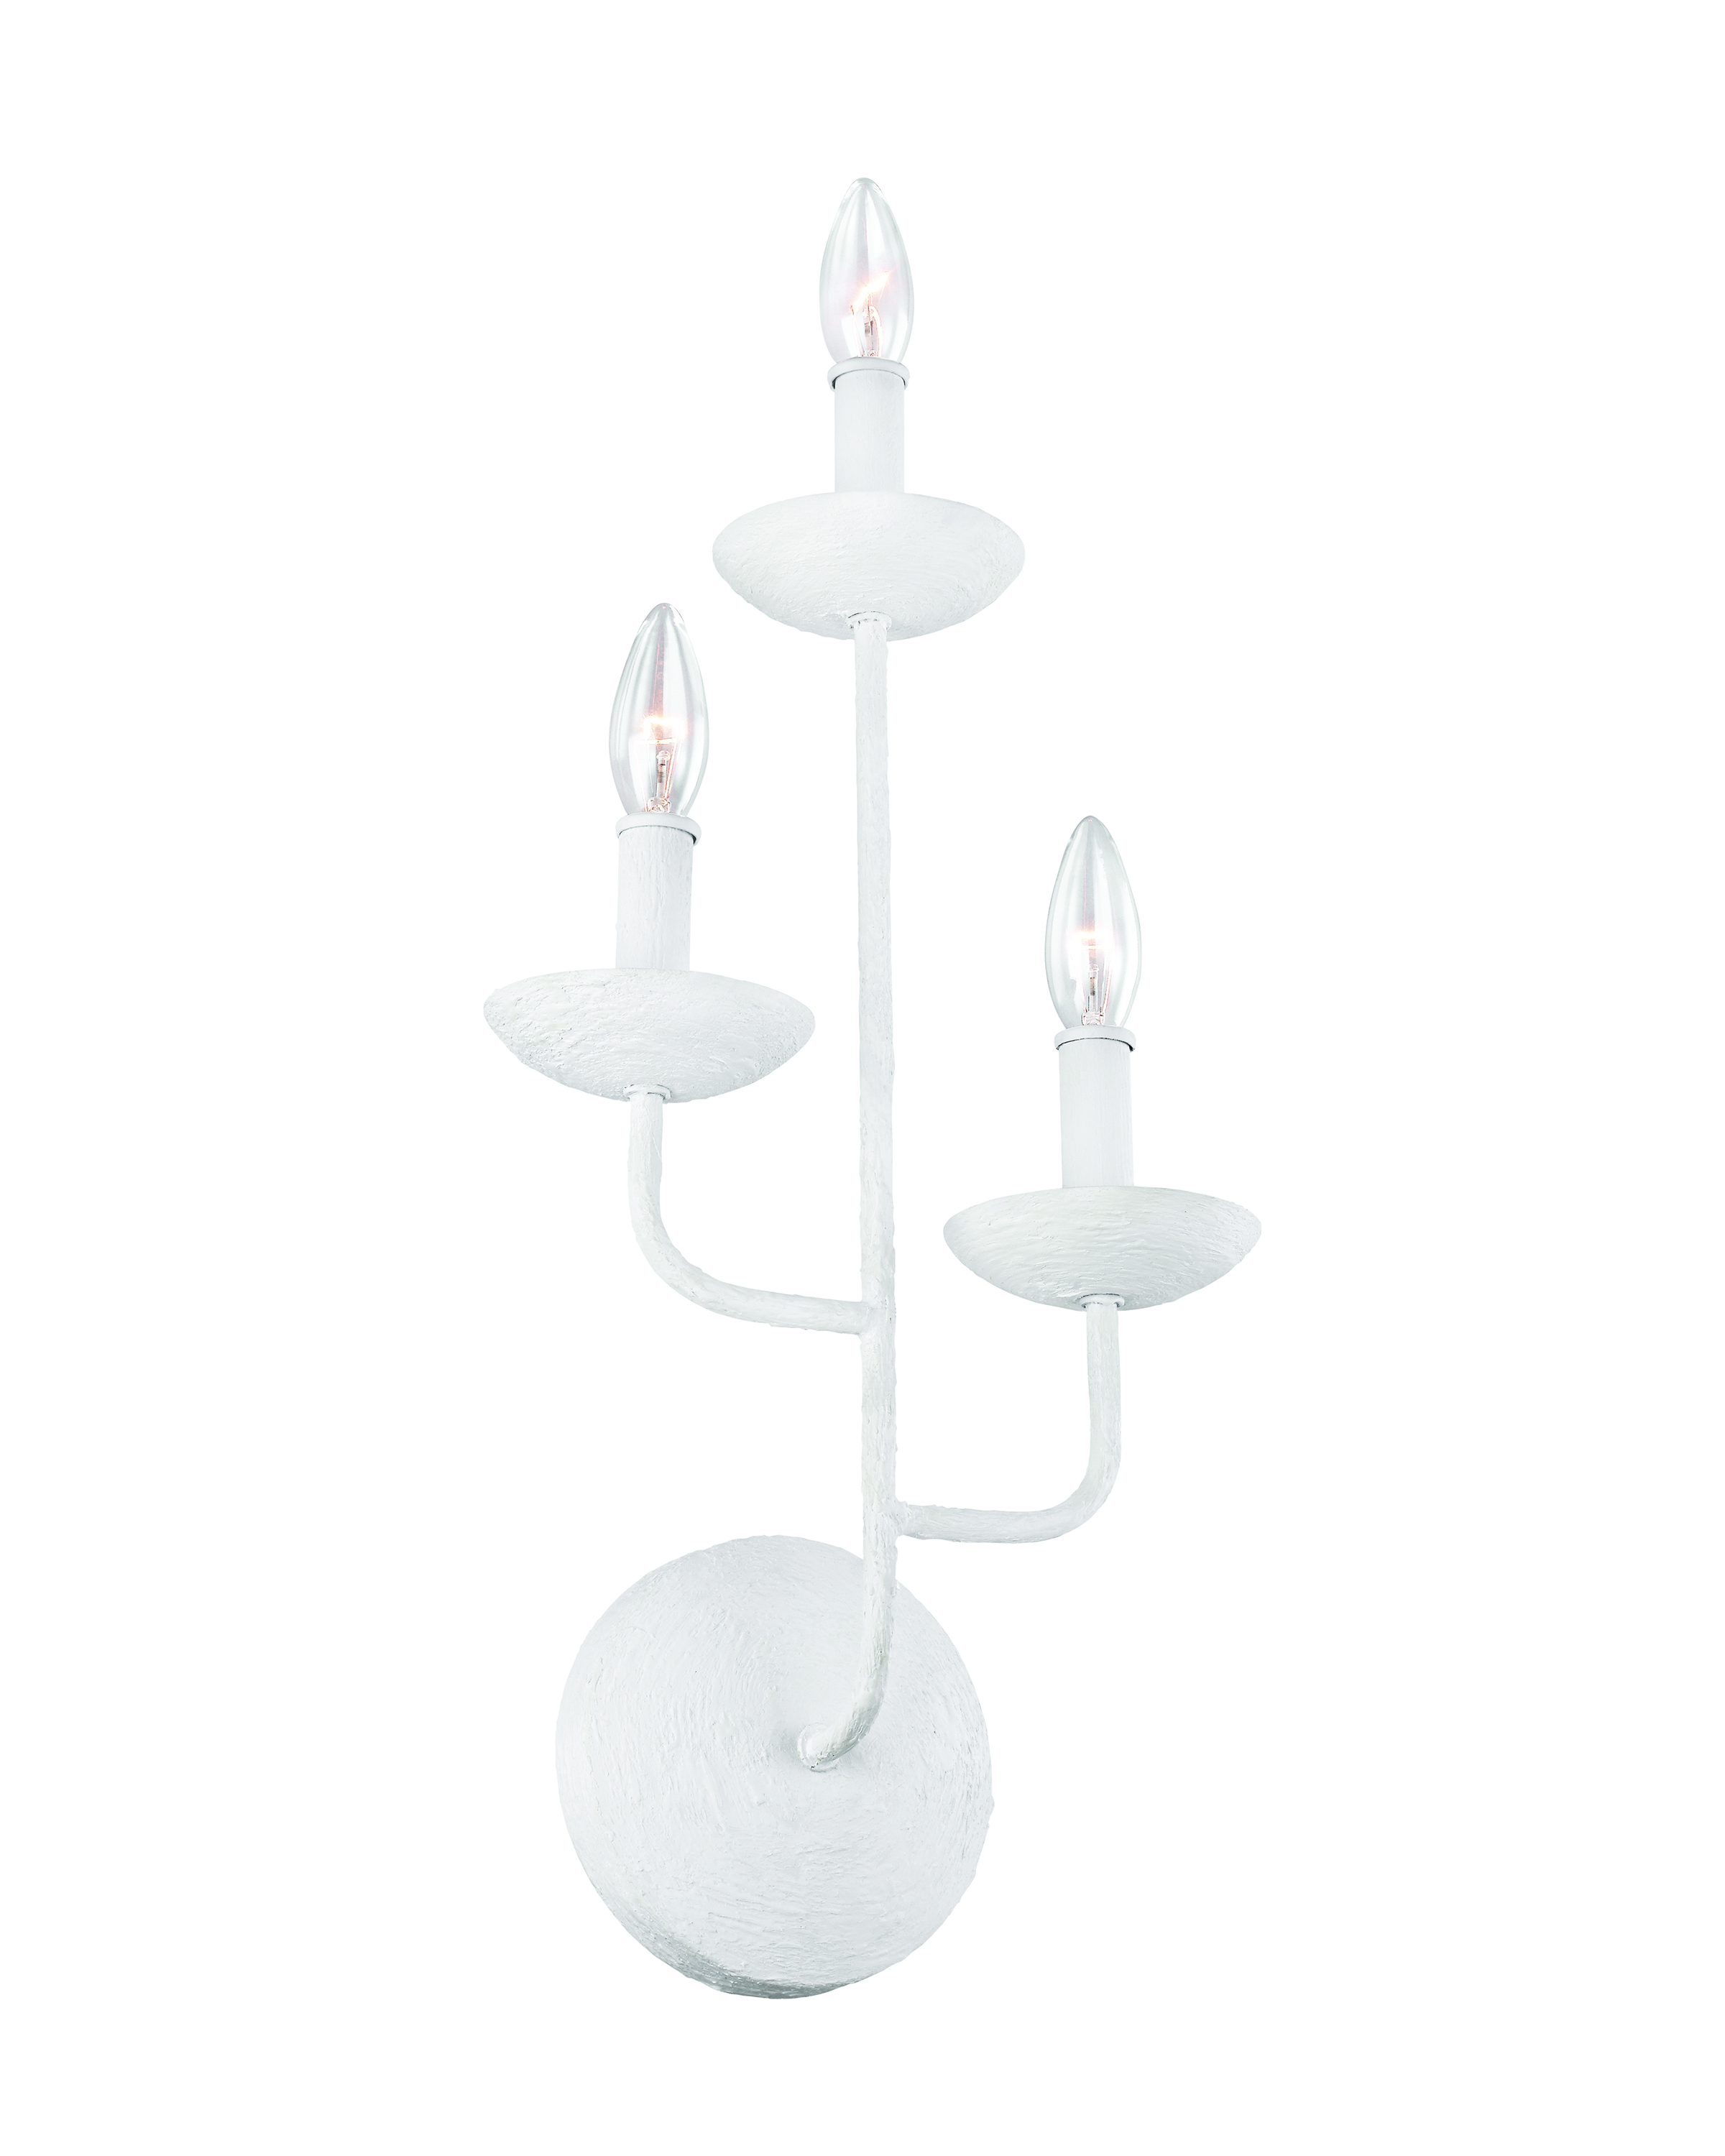 Annie two-light sconce in white from Feiss